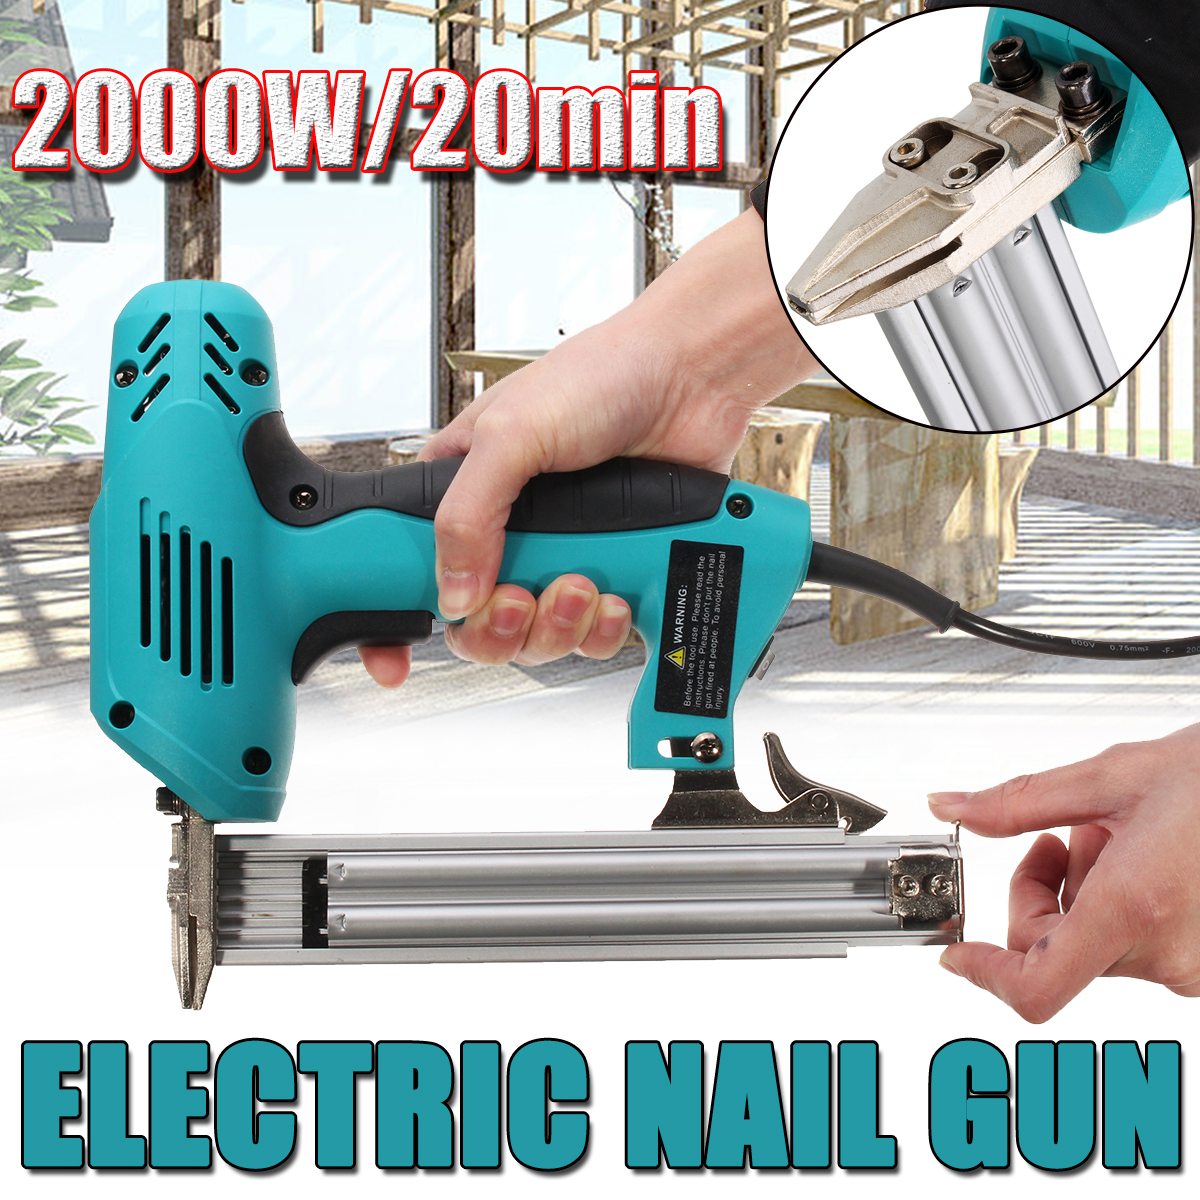 10-30mm Electric Straight Nail-Gun Heavy-Duty Woodworking Tool Electrical Staple Nail 220V 2000W Portable Electric Tacker Gun